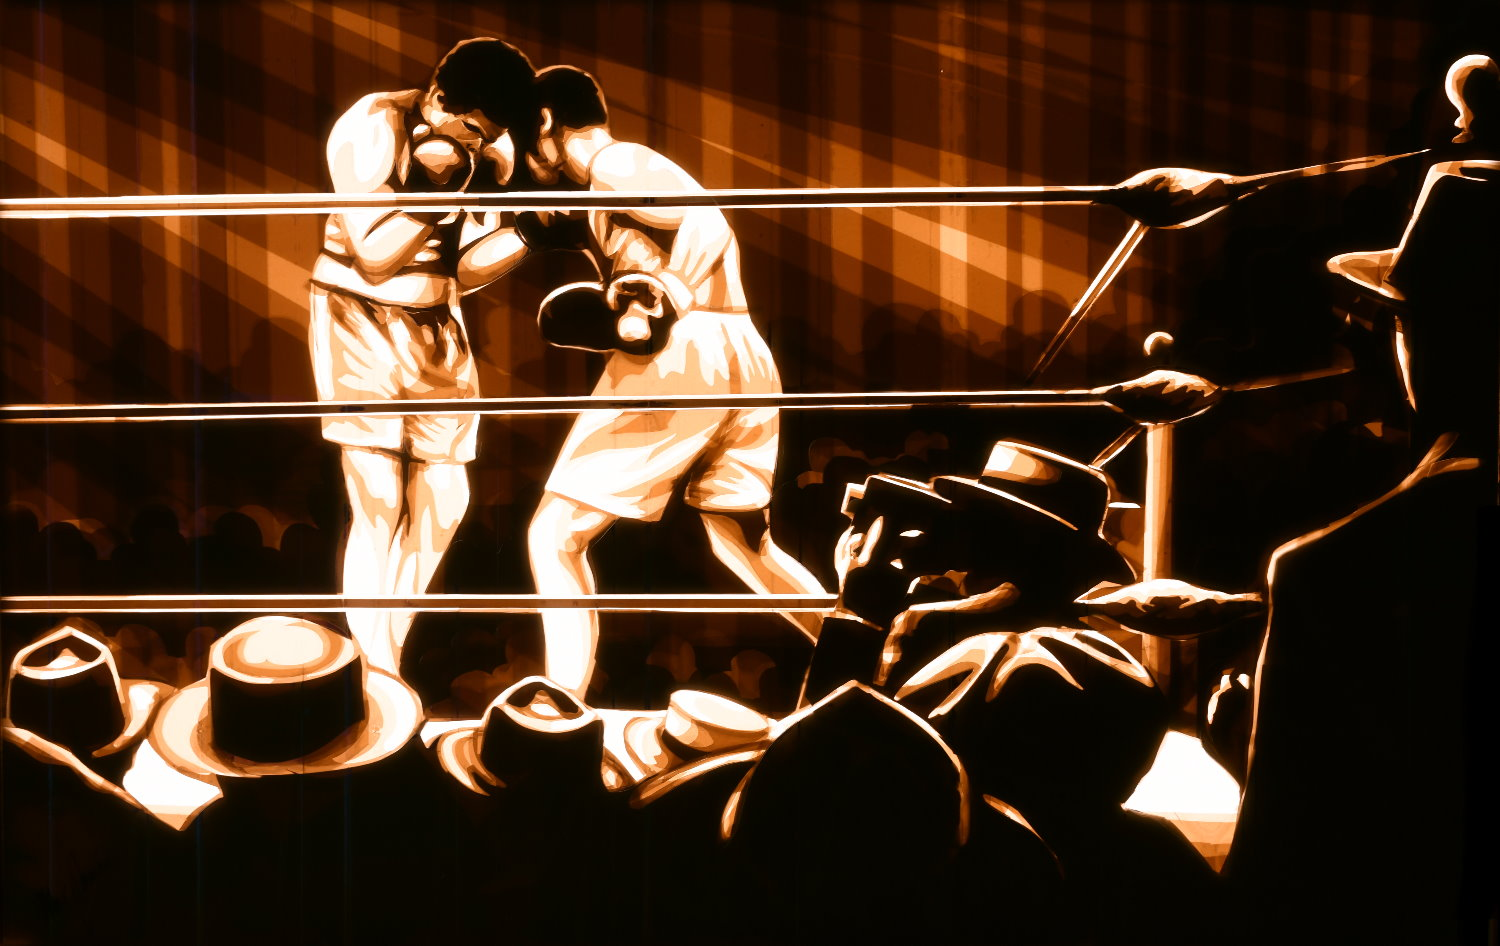 Tape Artist Max Zorn created a boxing scene only with packing tape and a scalpel. One of the best contemporary artist in his medium layers tape until the motif appears